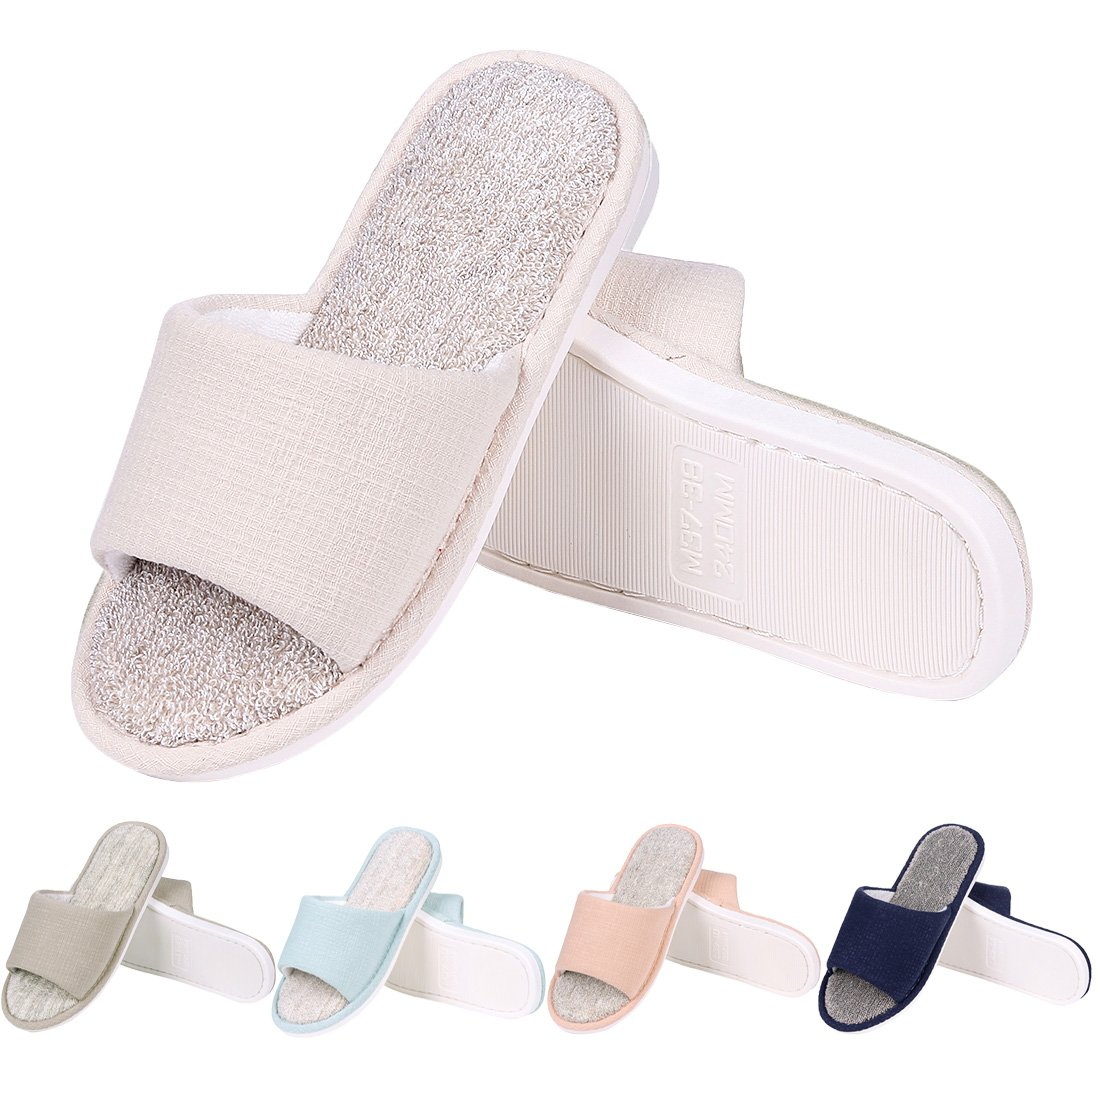 Women's Memory Foam House Slippers Terry Cloth Home Shoes Open Toe Slip on Cotton House Slippers BG-M